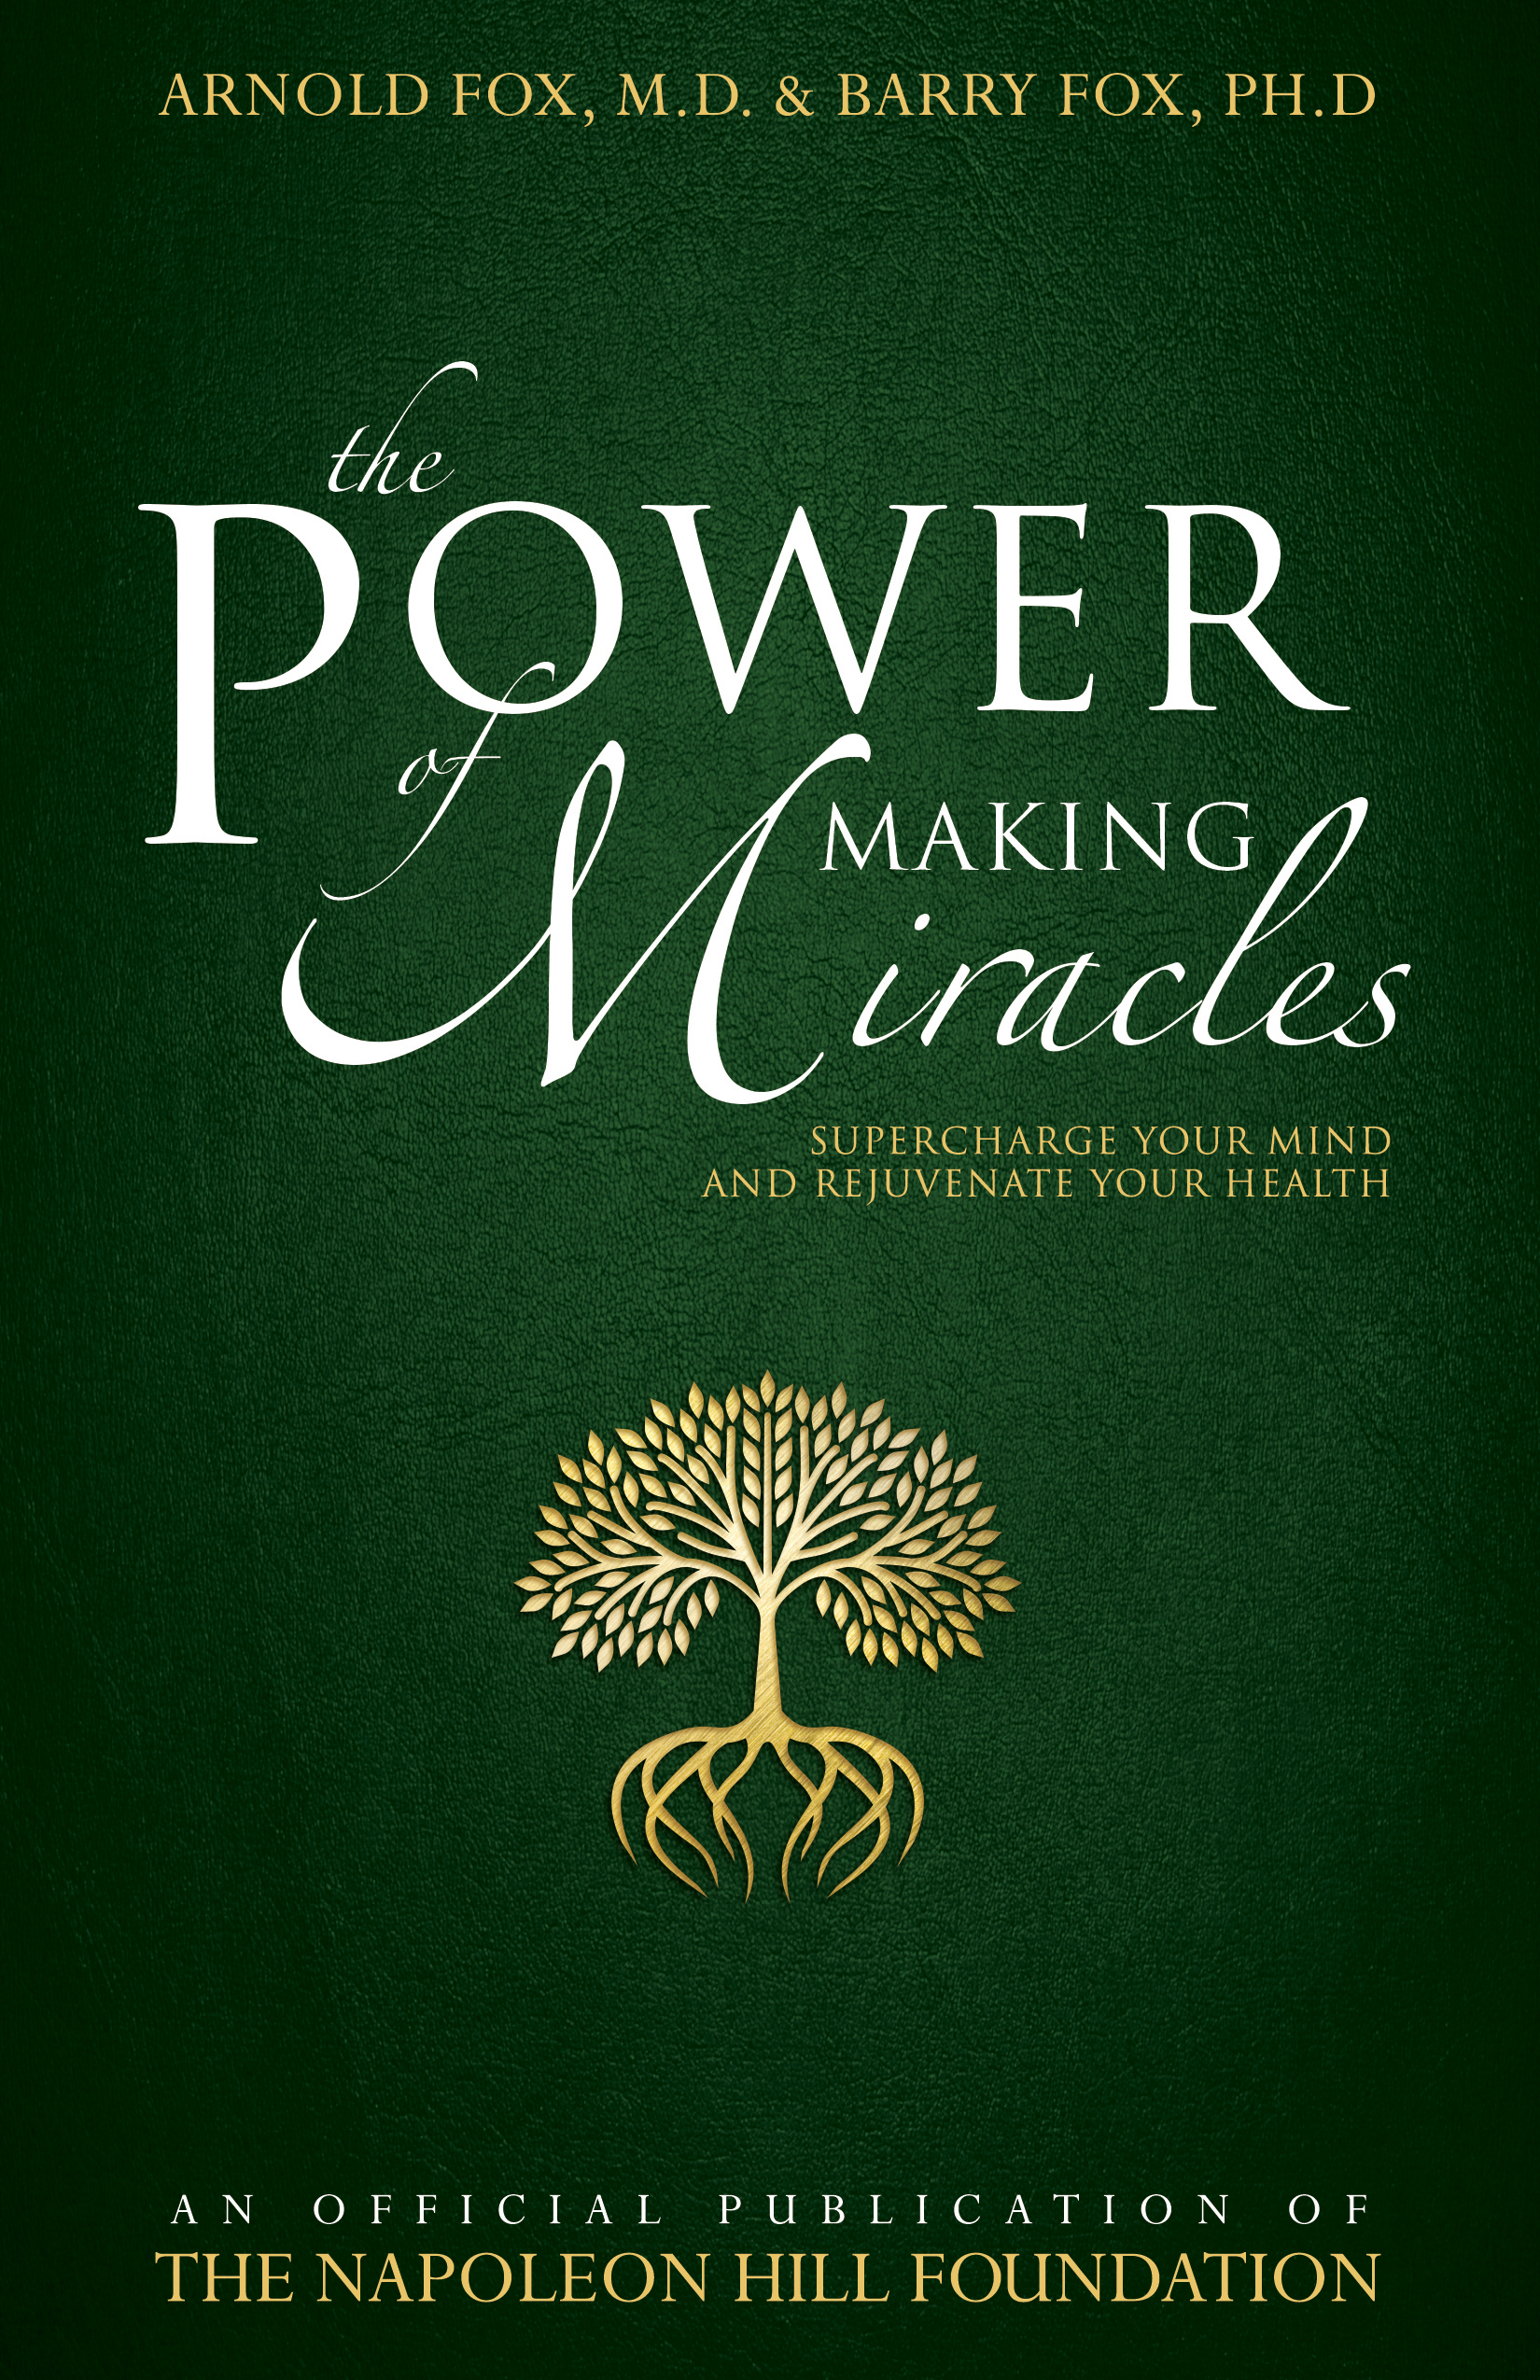 The Power of Making Miracles - Arnold Fox, MD and Barry Fox, PHD